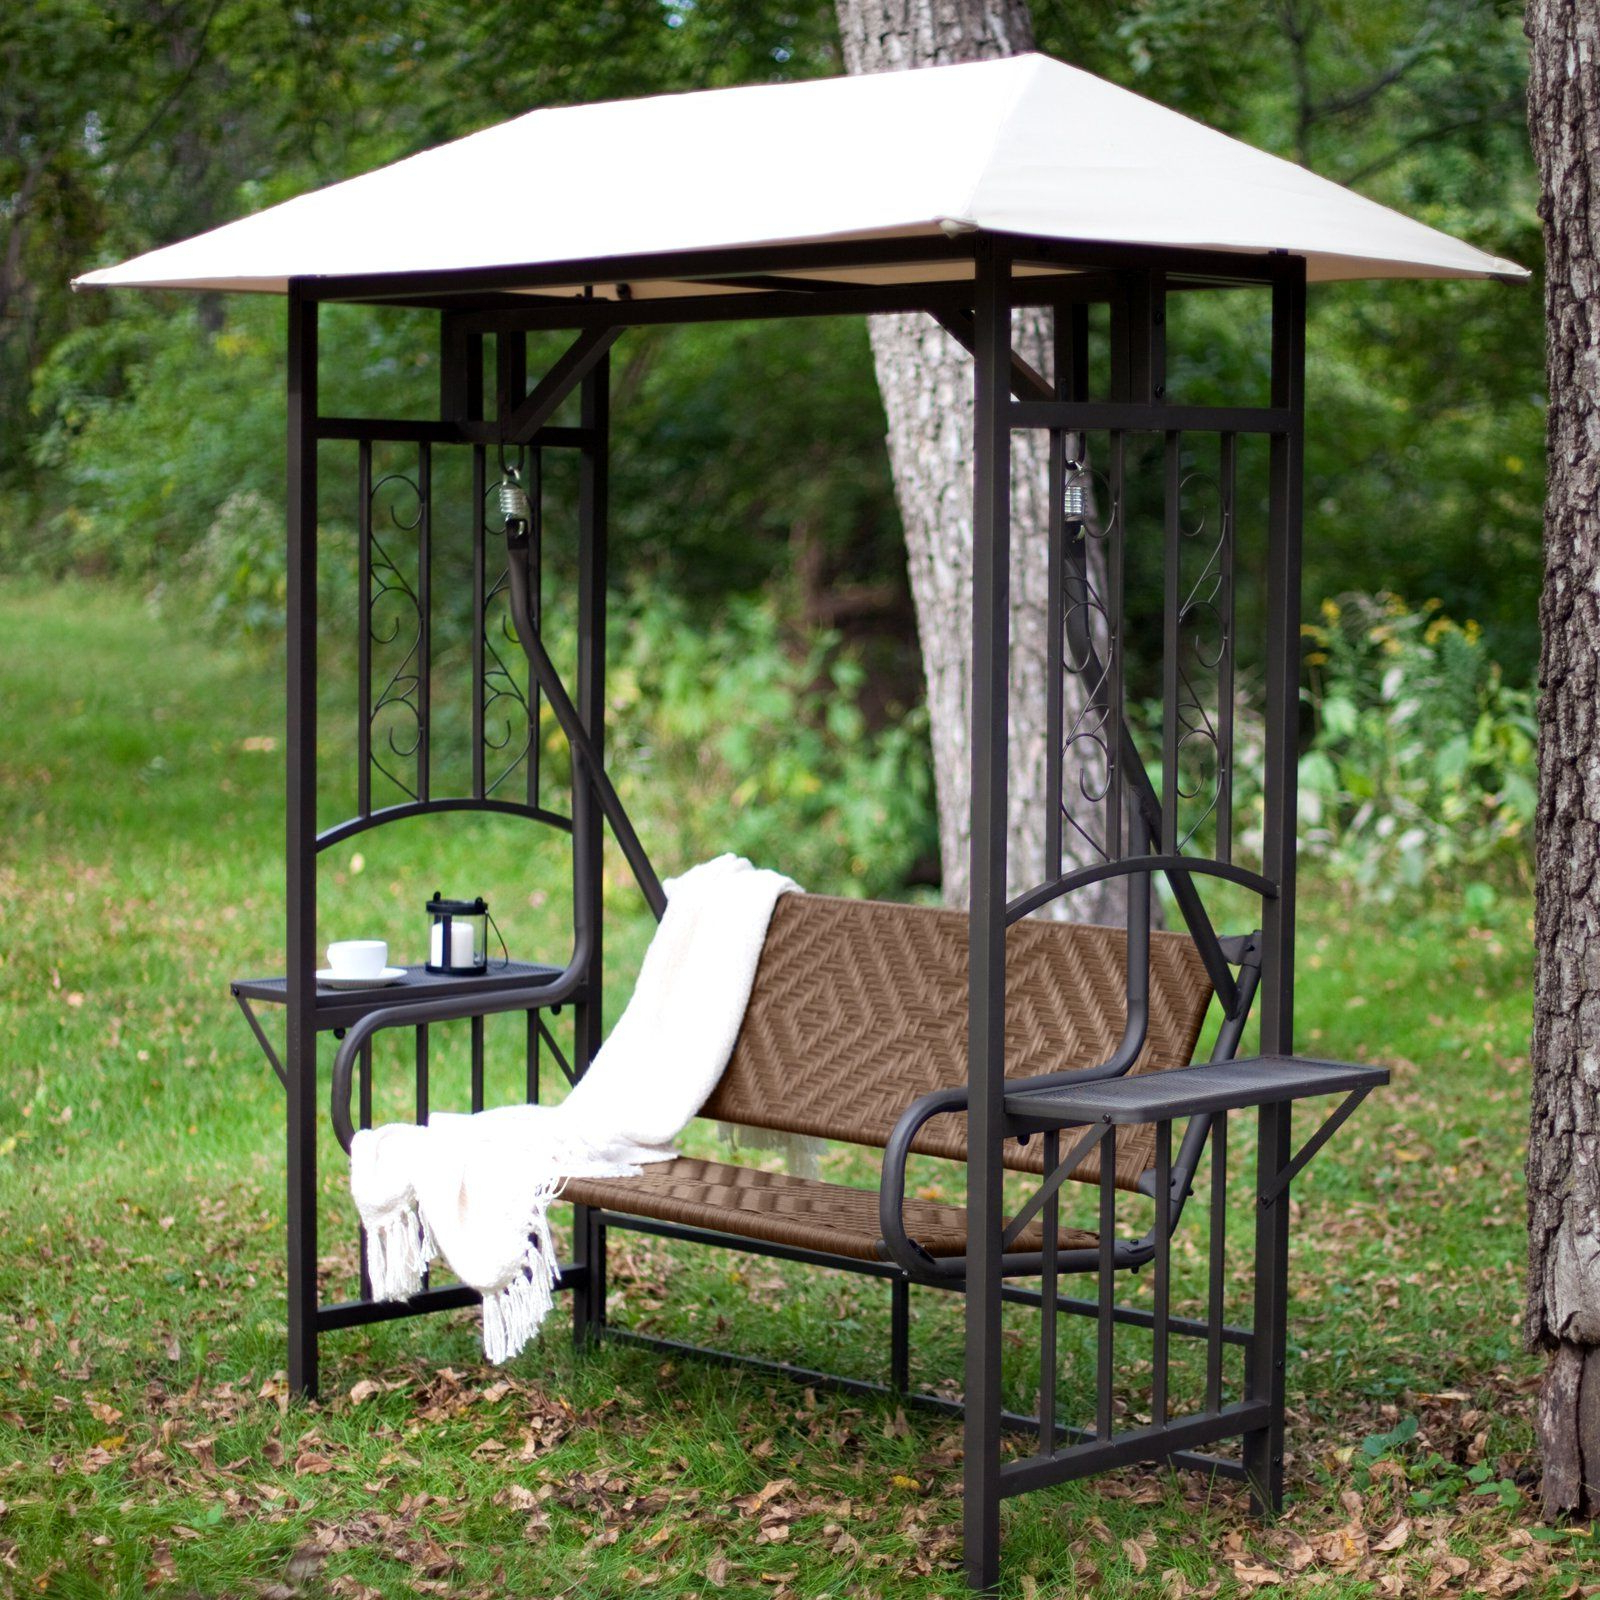 Most Recent Coral Coast Bellora 2 Person Gazebo Swing – Natural Resin Pertaining To Patio Gazebo Porch Canopy Swings (Gallery 1 of 25)